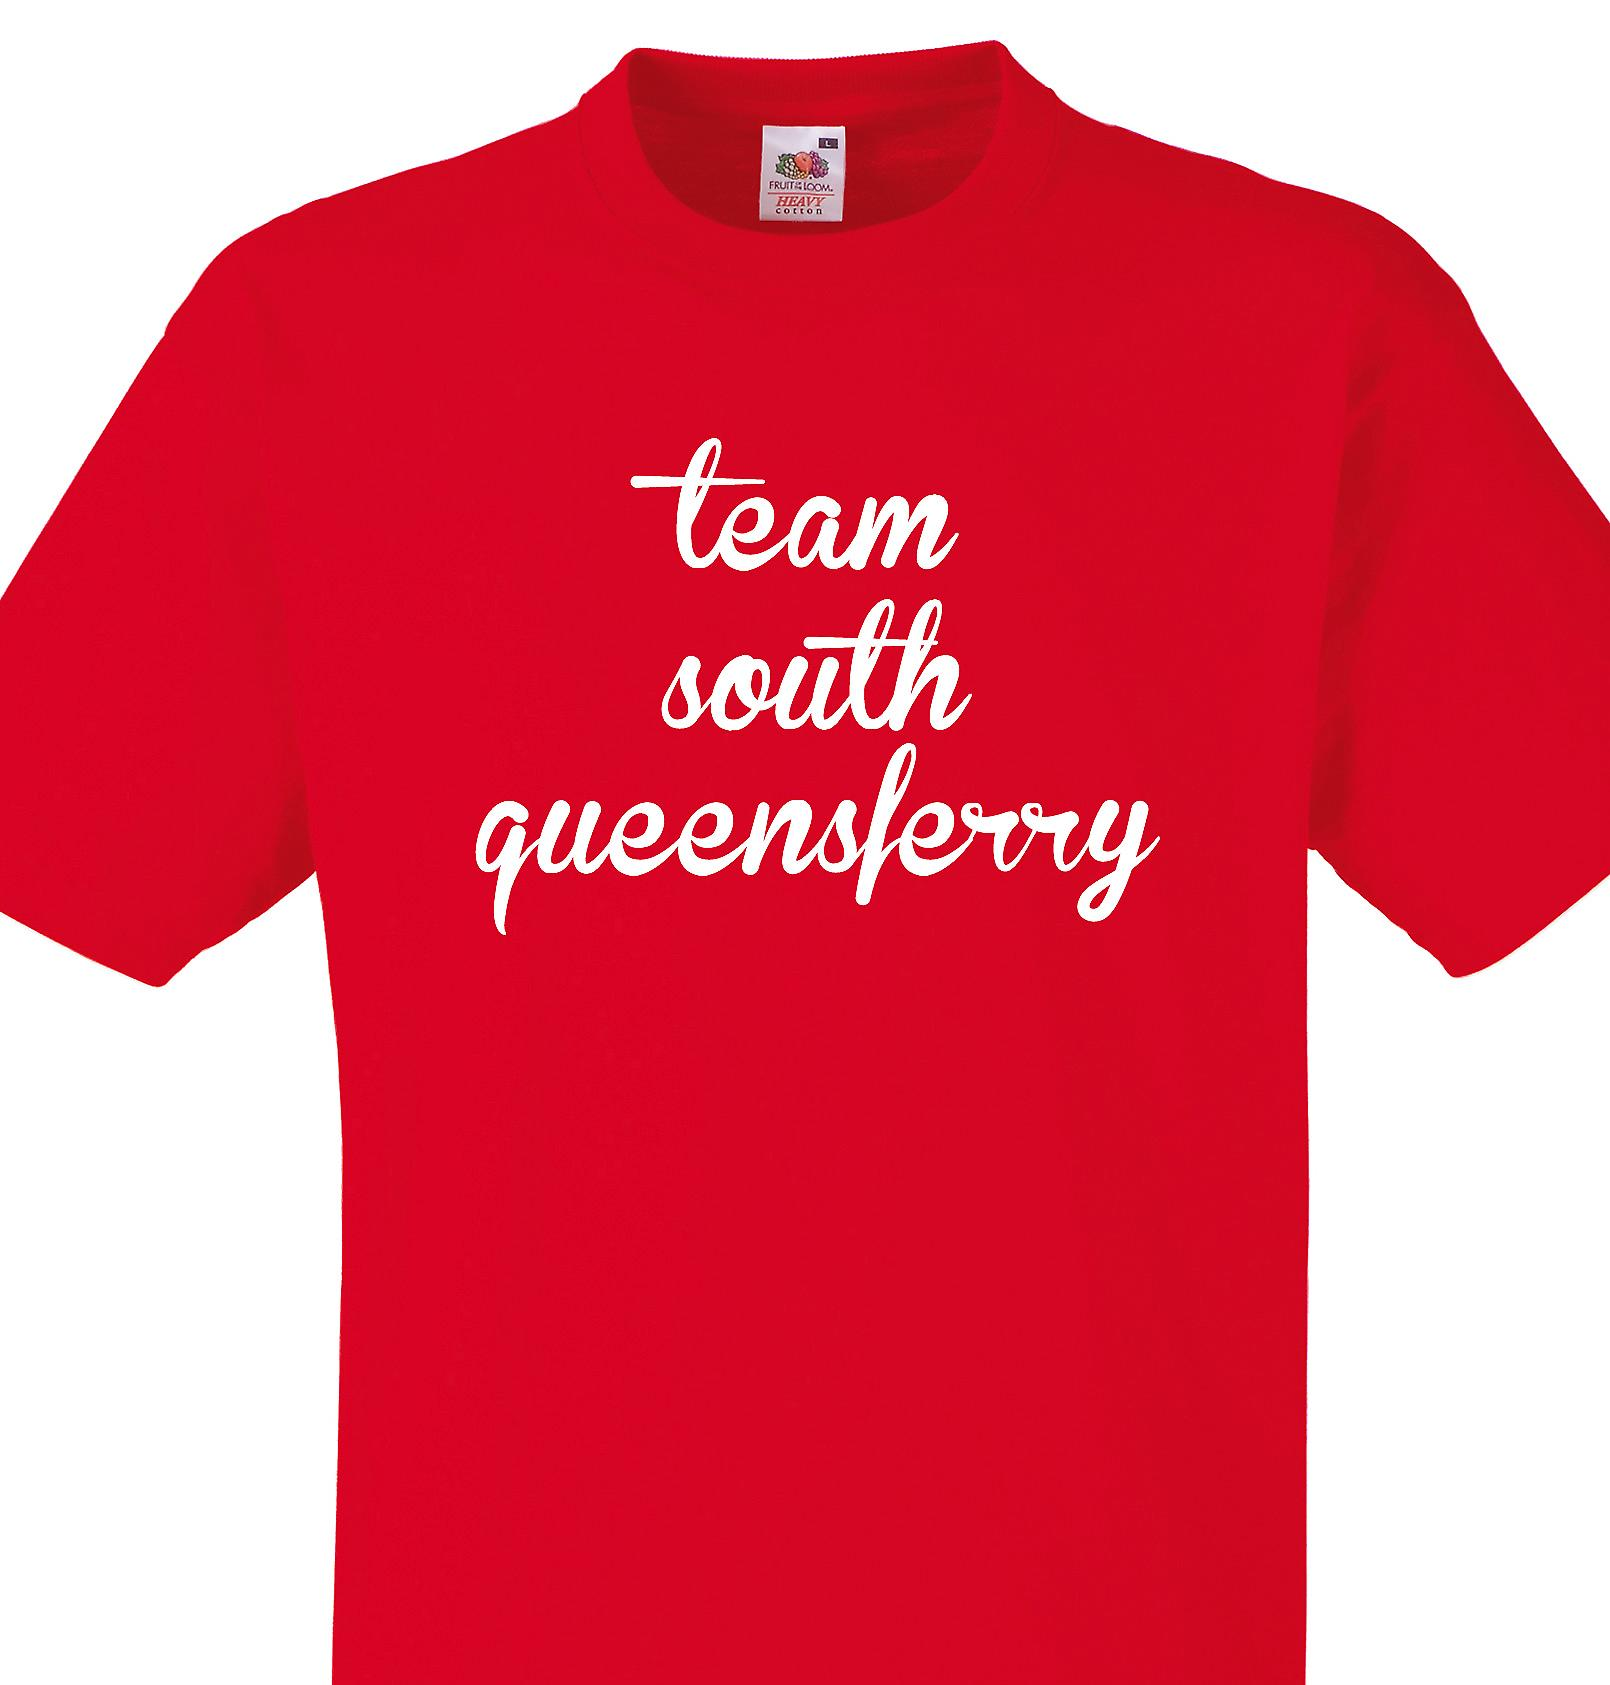 Team South queensferry Red T shirt